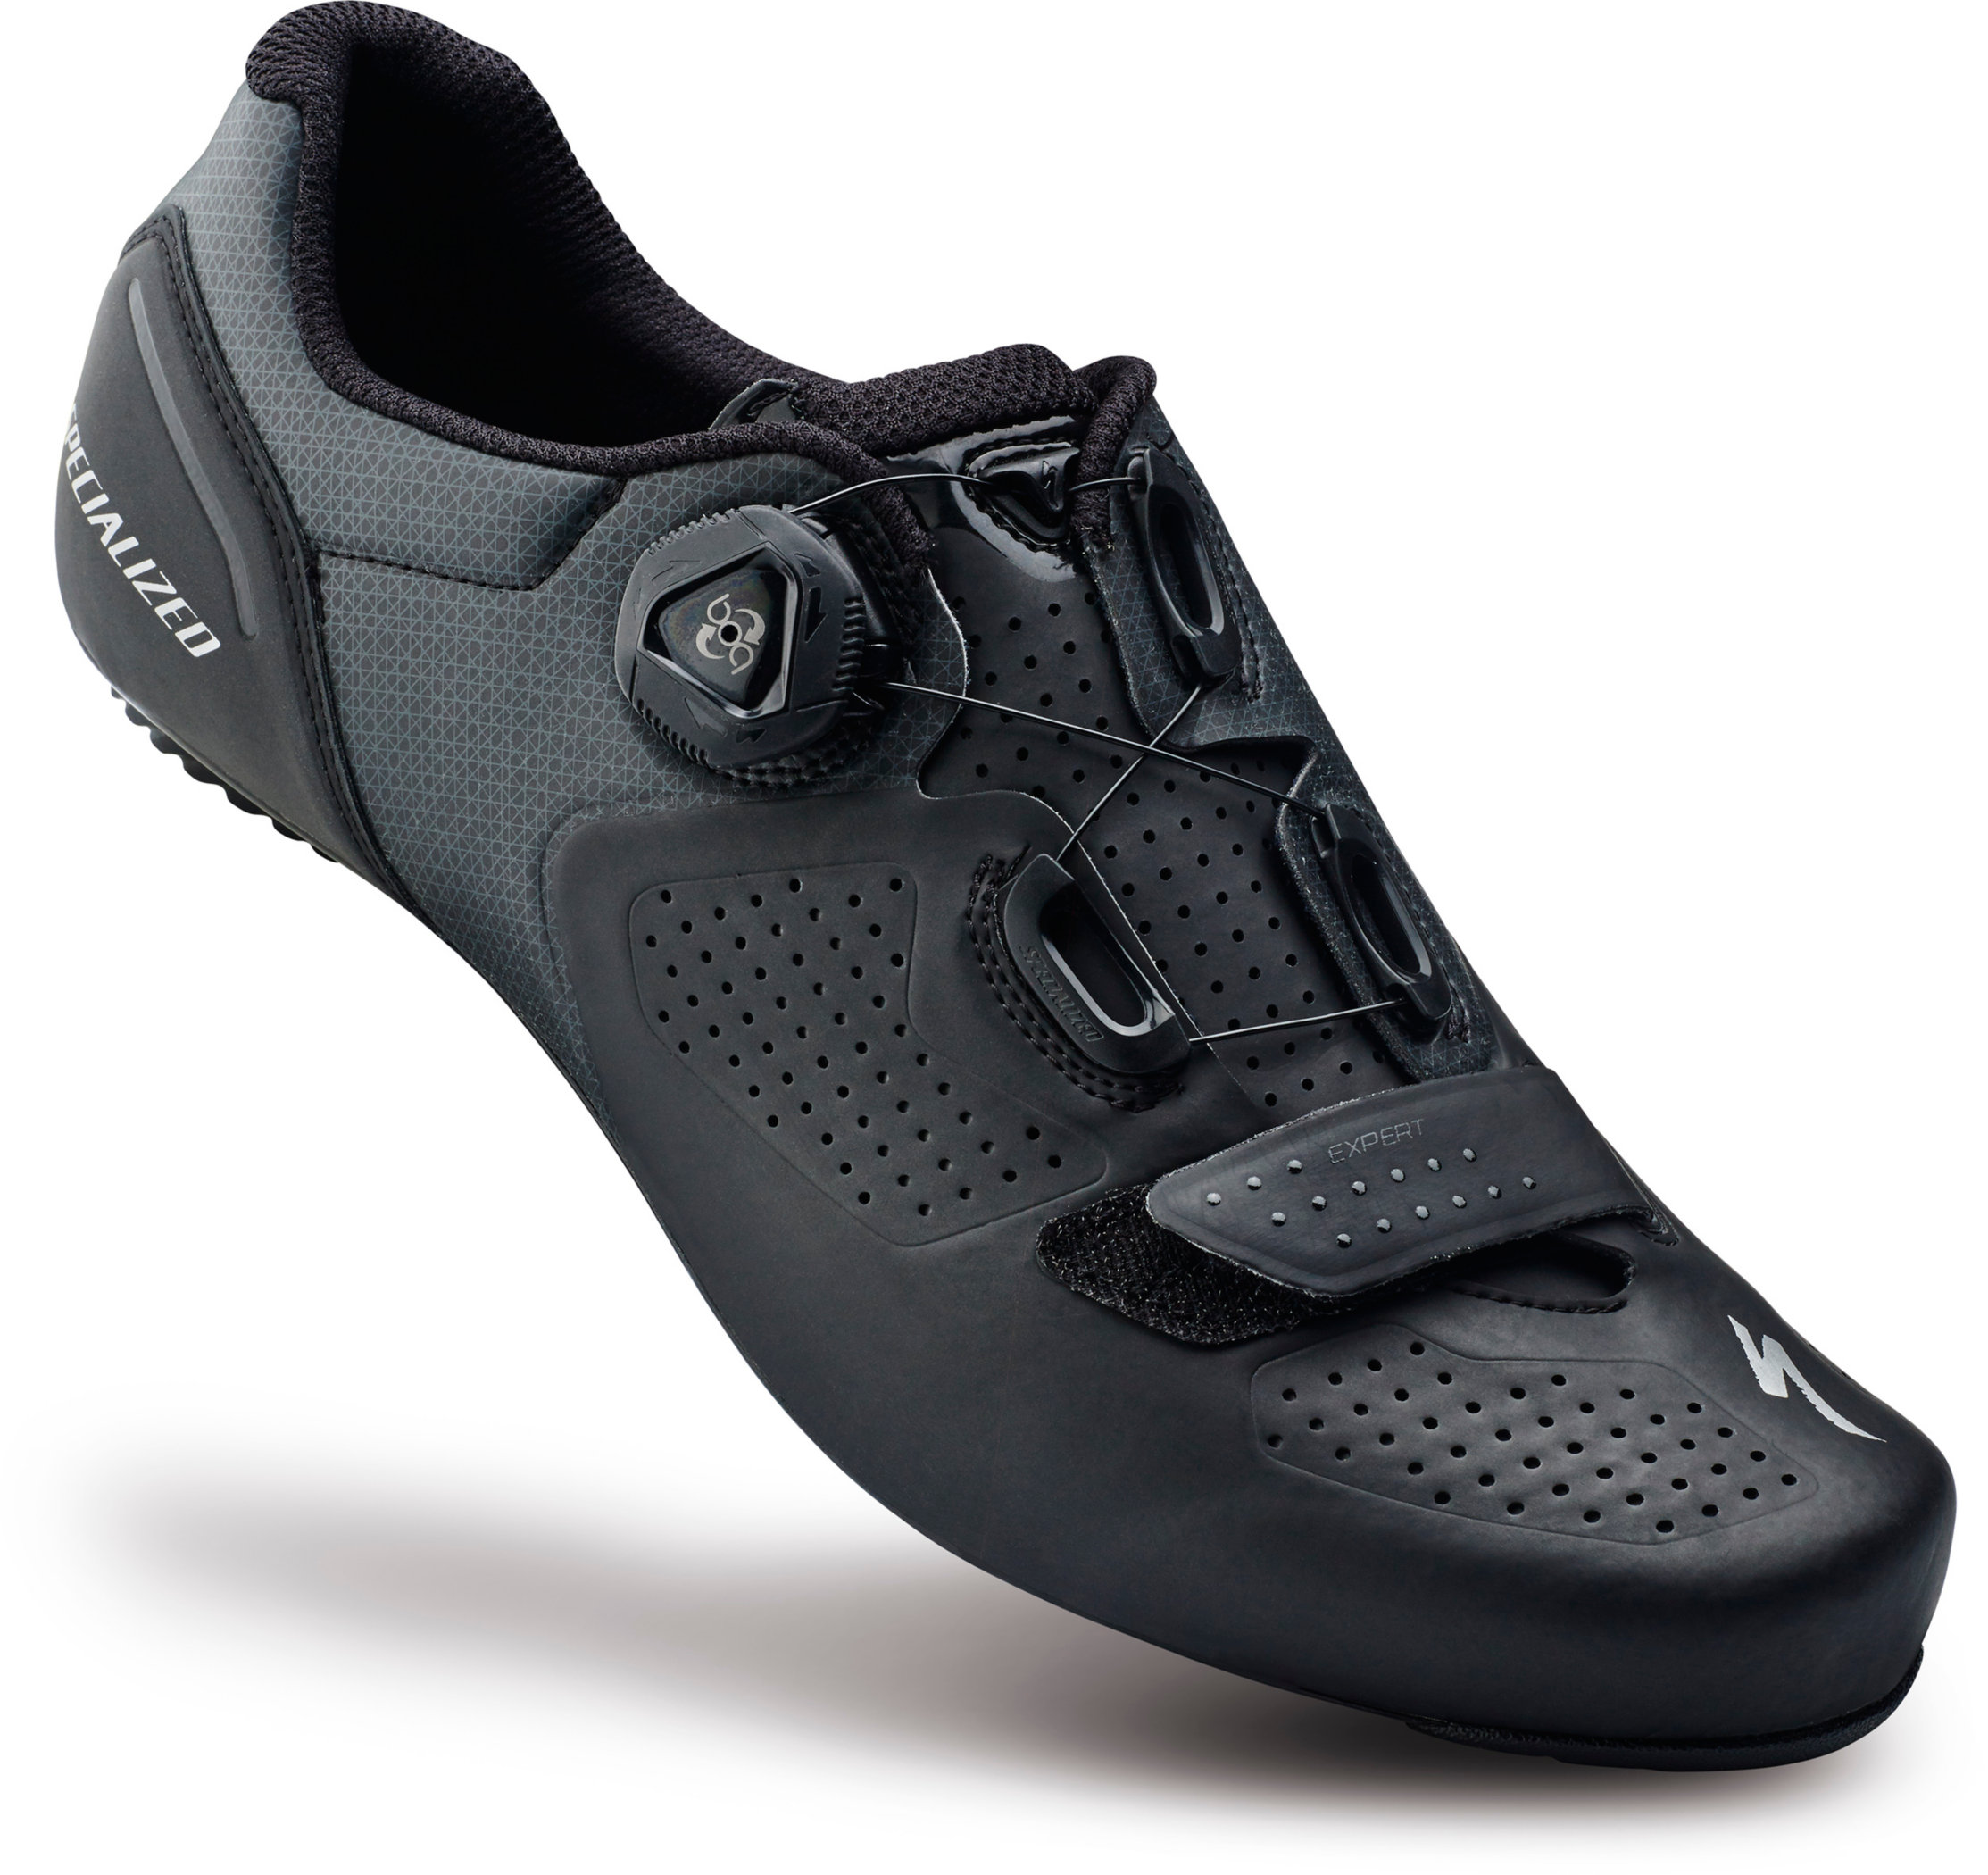 SPECIALIZED EXPERT RD SHOE BLK 48/13.75 - Bikedreams & Dustbikes